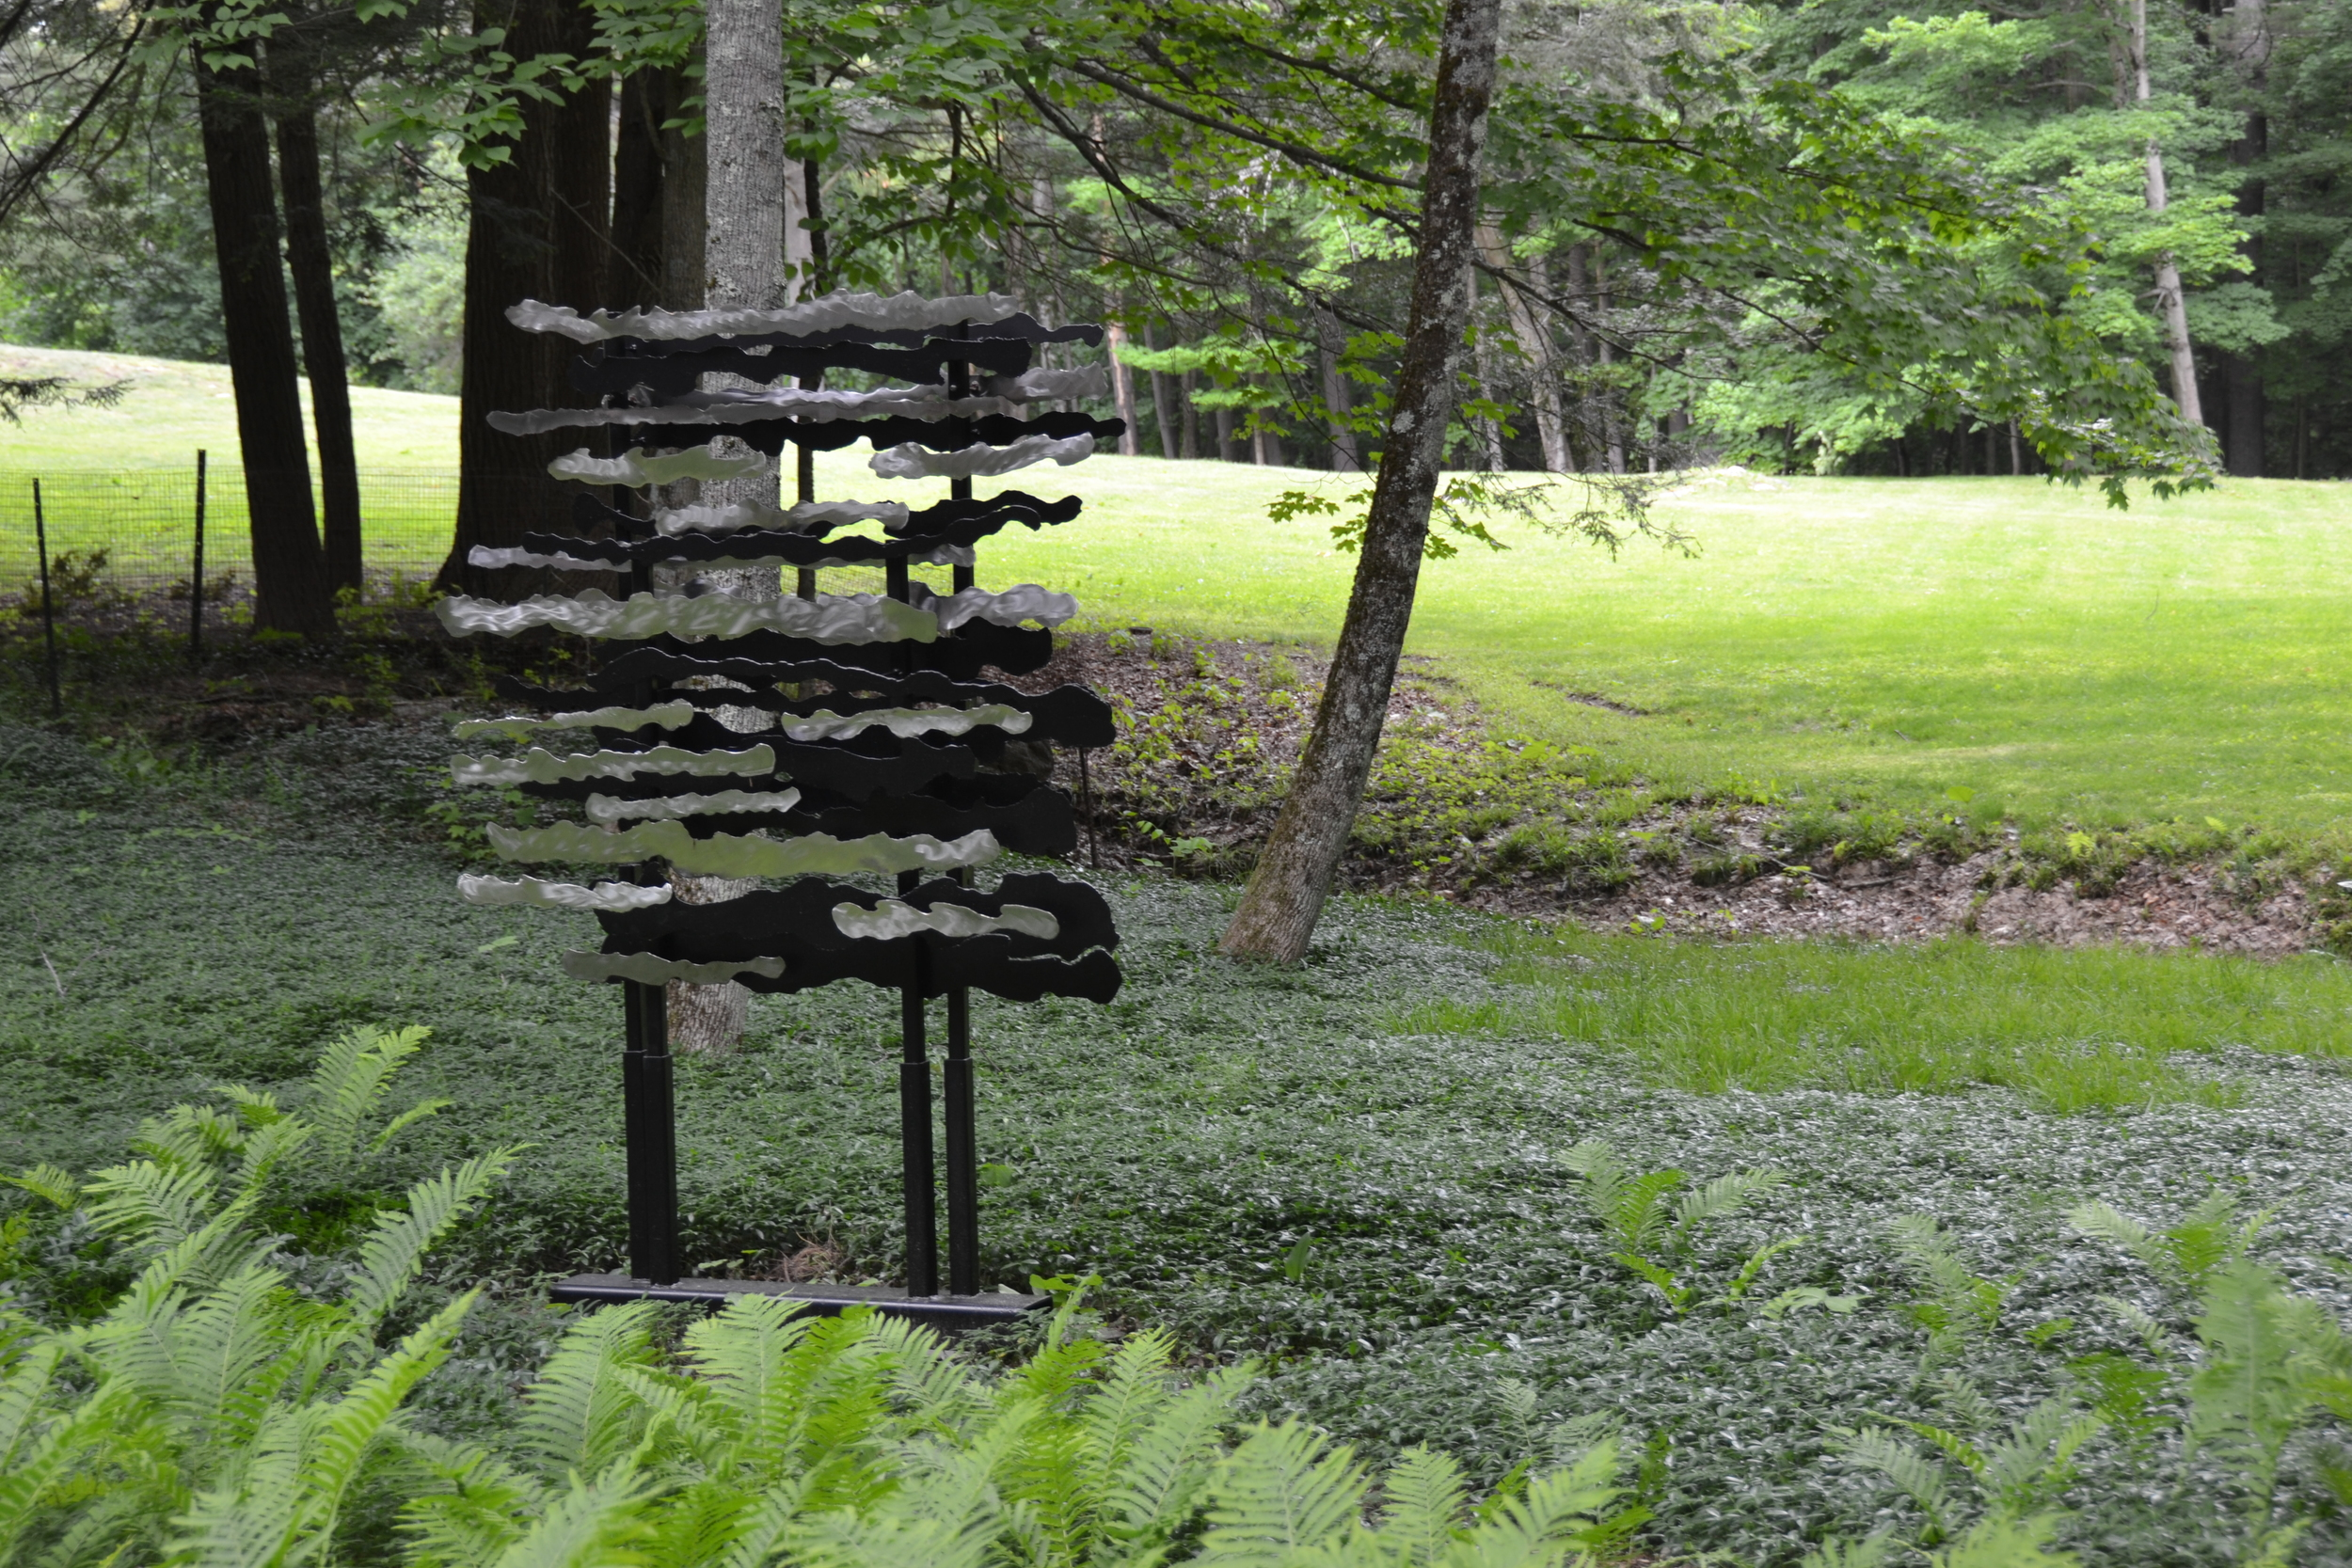 River Run1 - On display at The Mount, Lenox, MA 2016